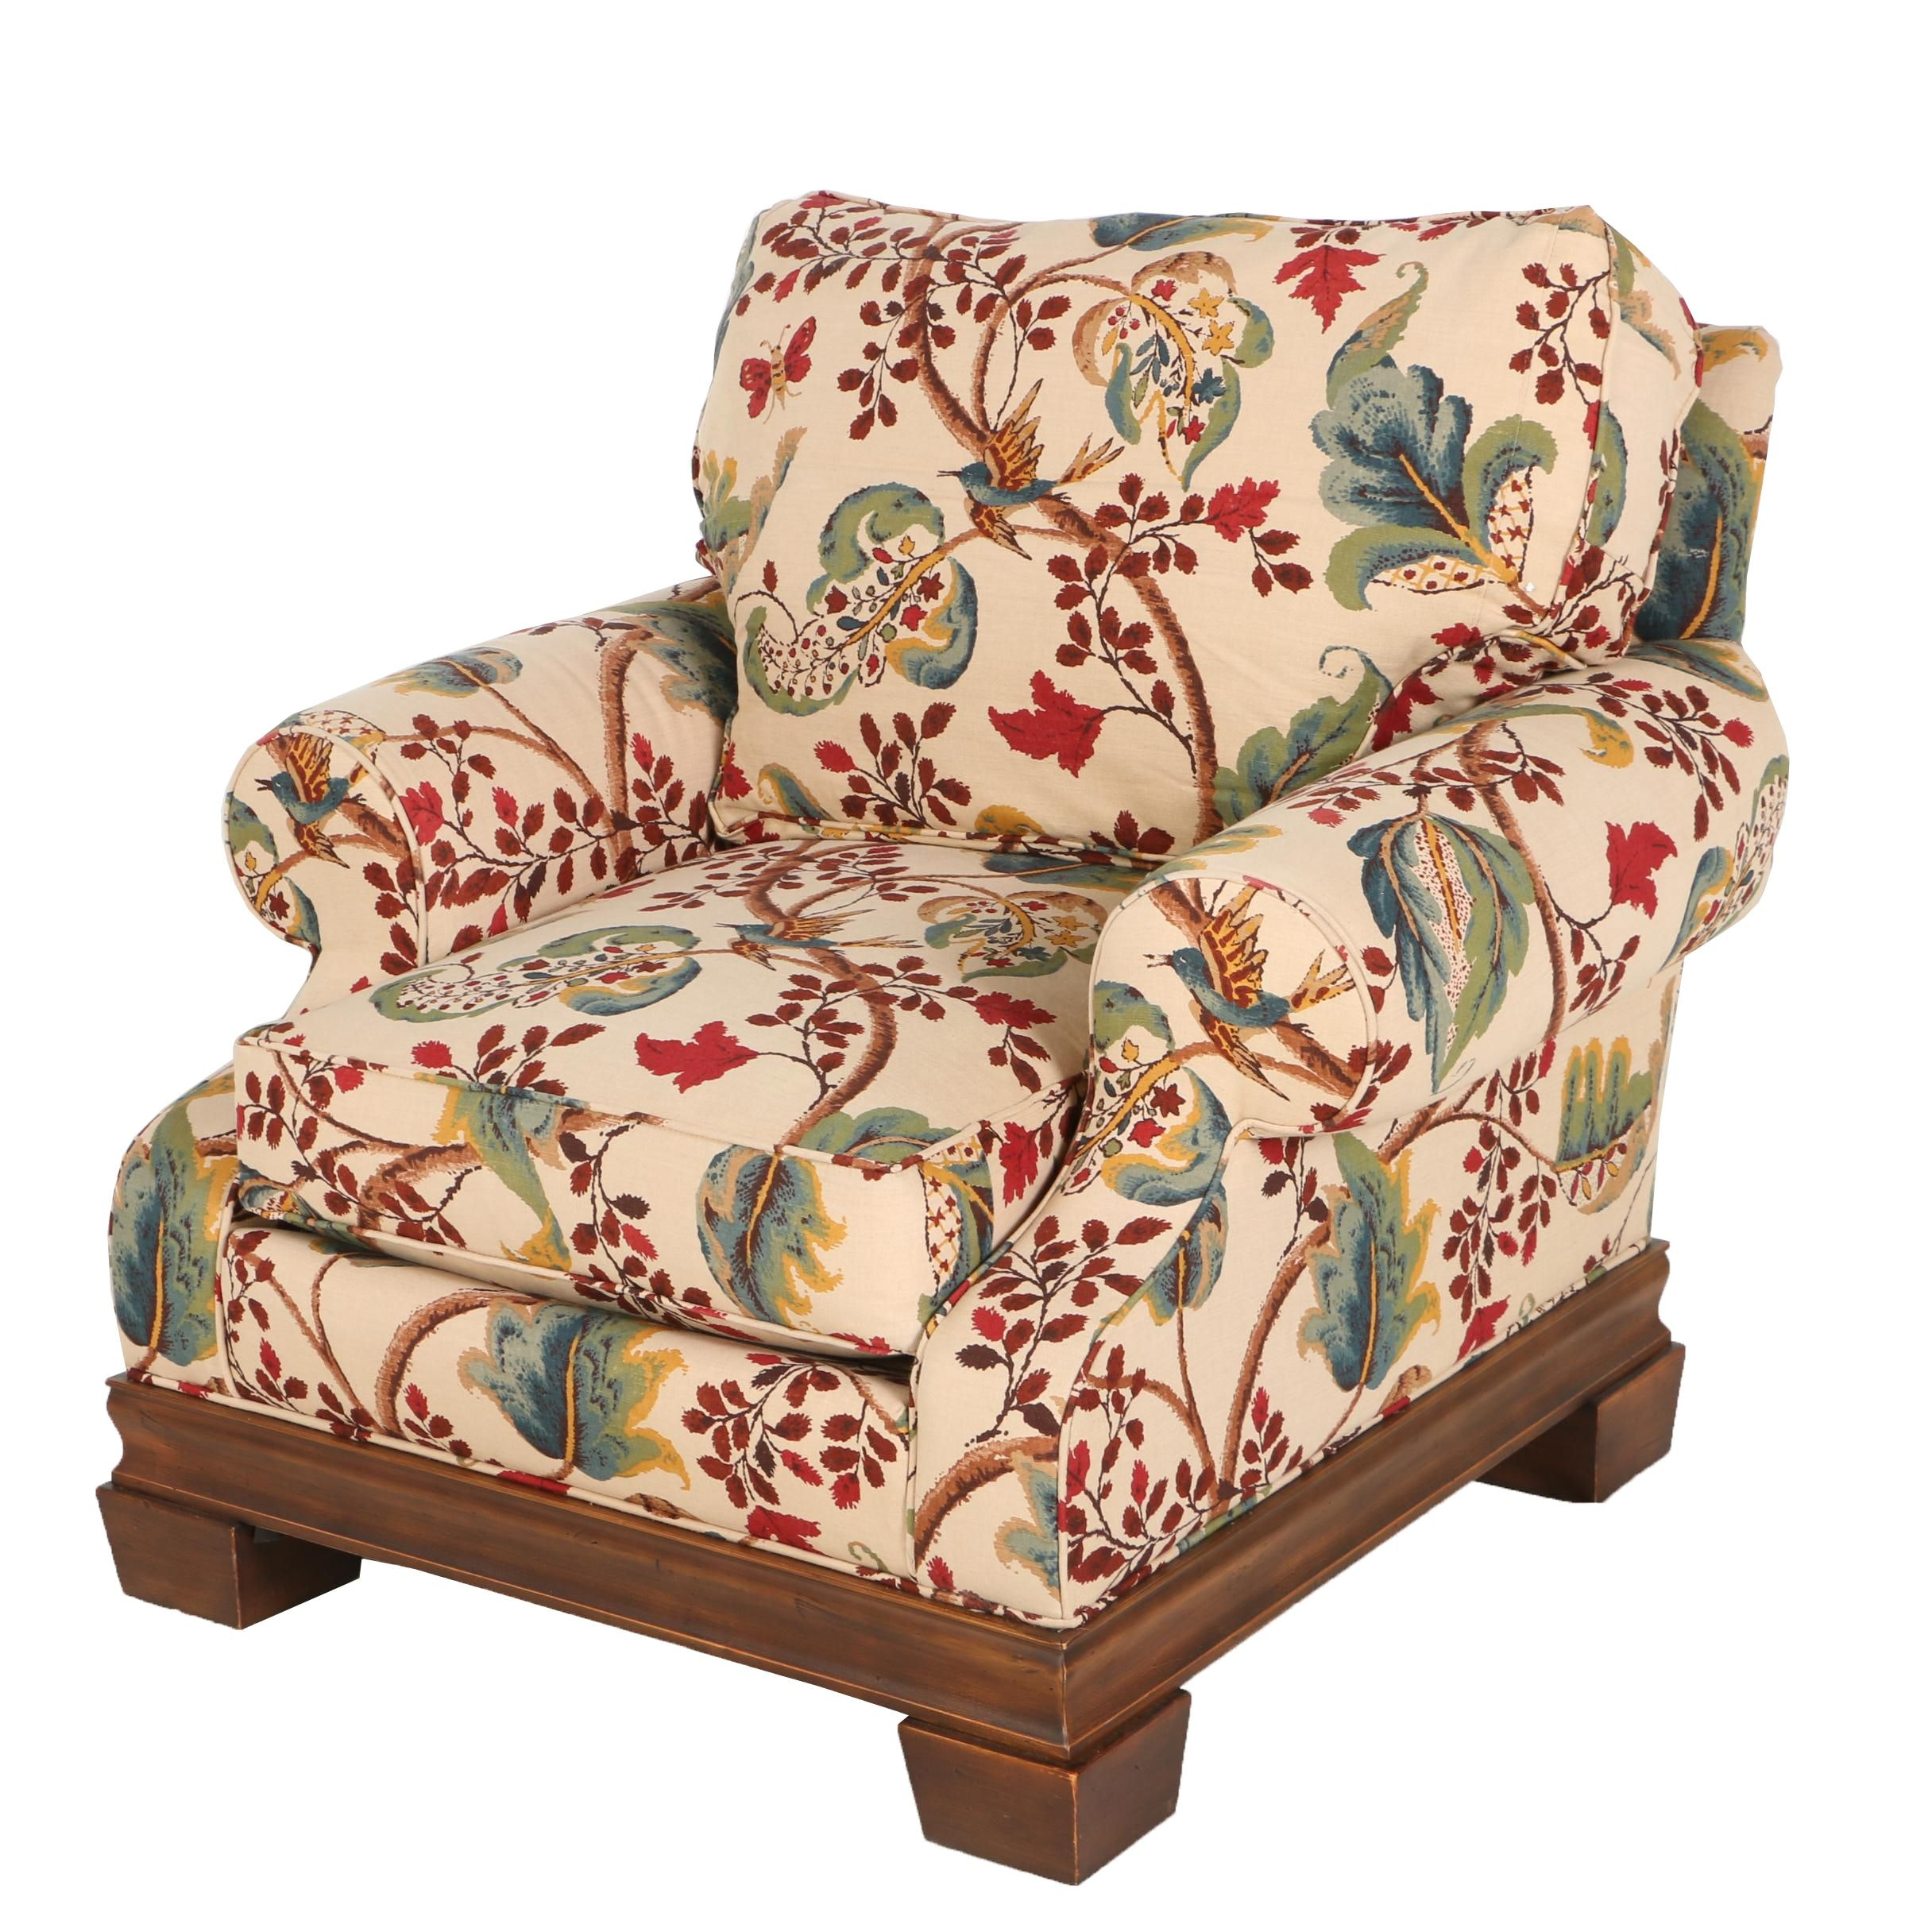 Contemporary Foliate-Patterned Armchair by Stanford